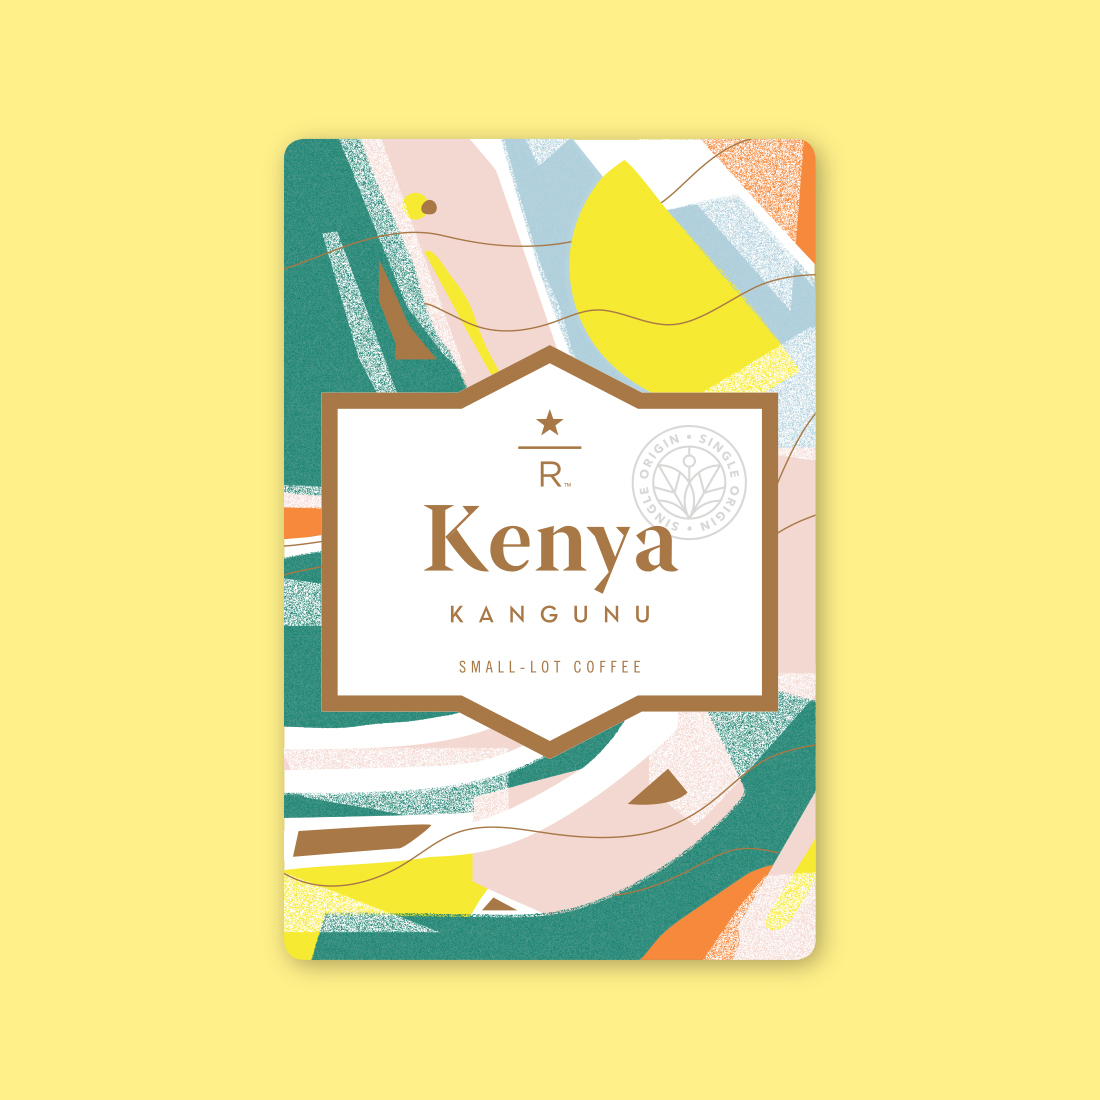 Coffee card illustration for KENYA KANGUNU